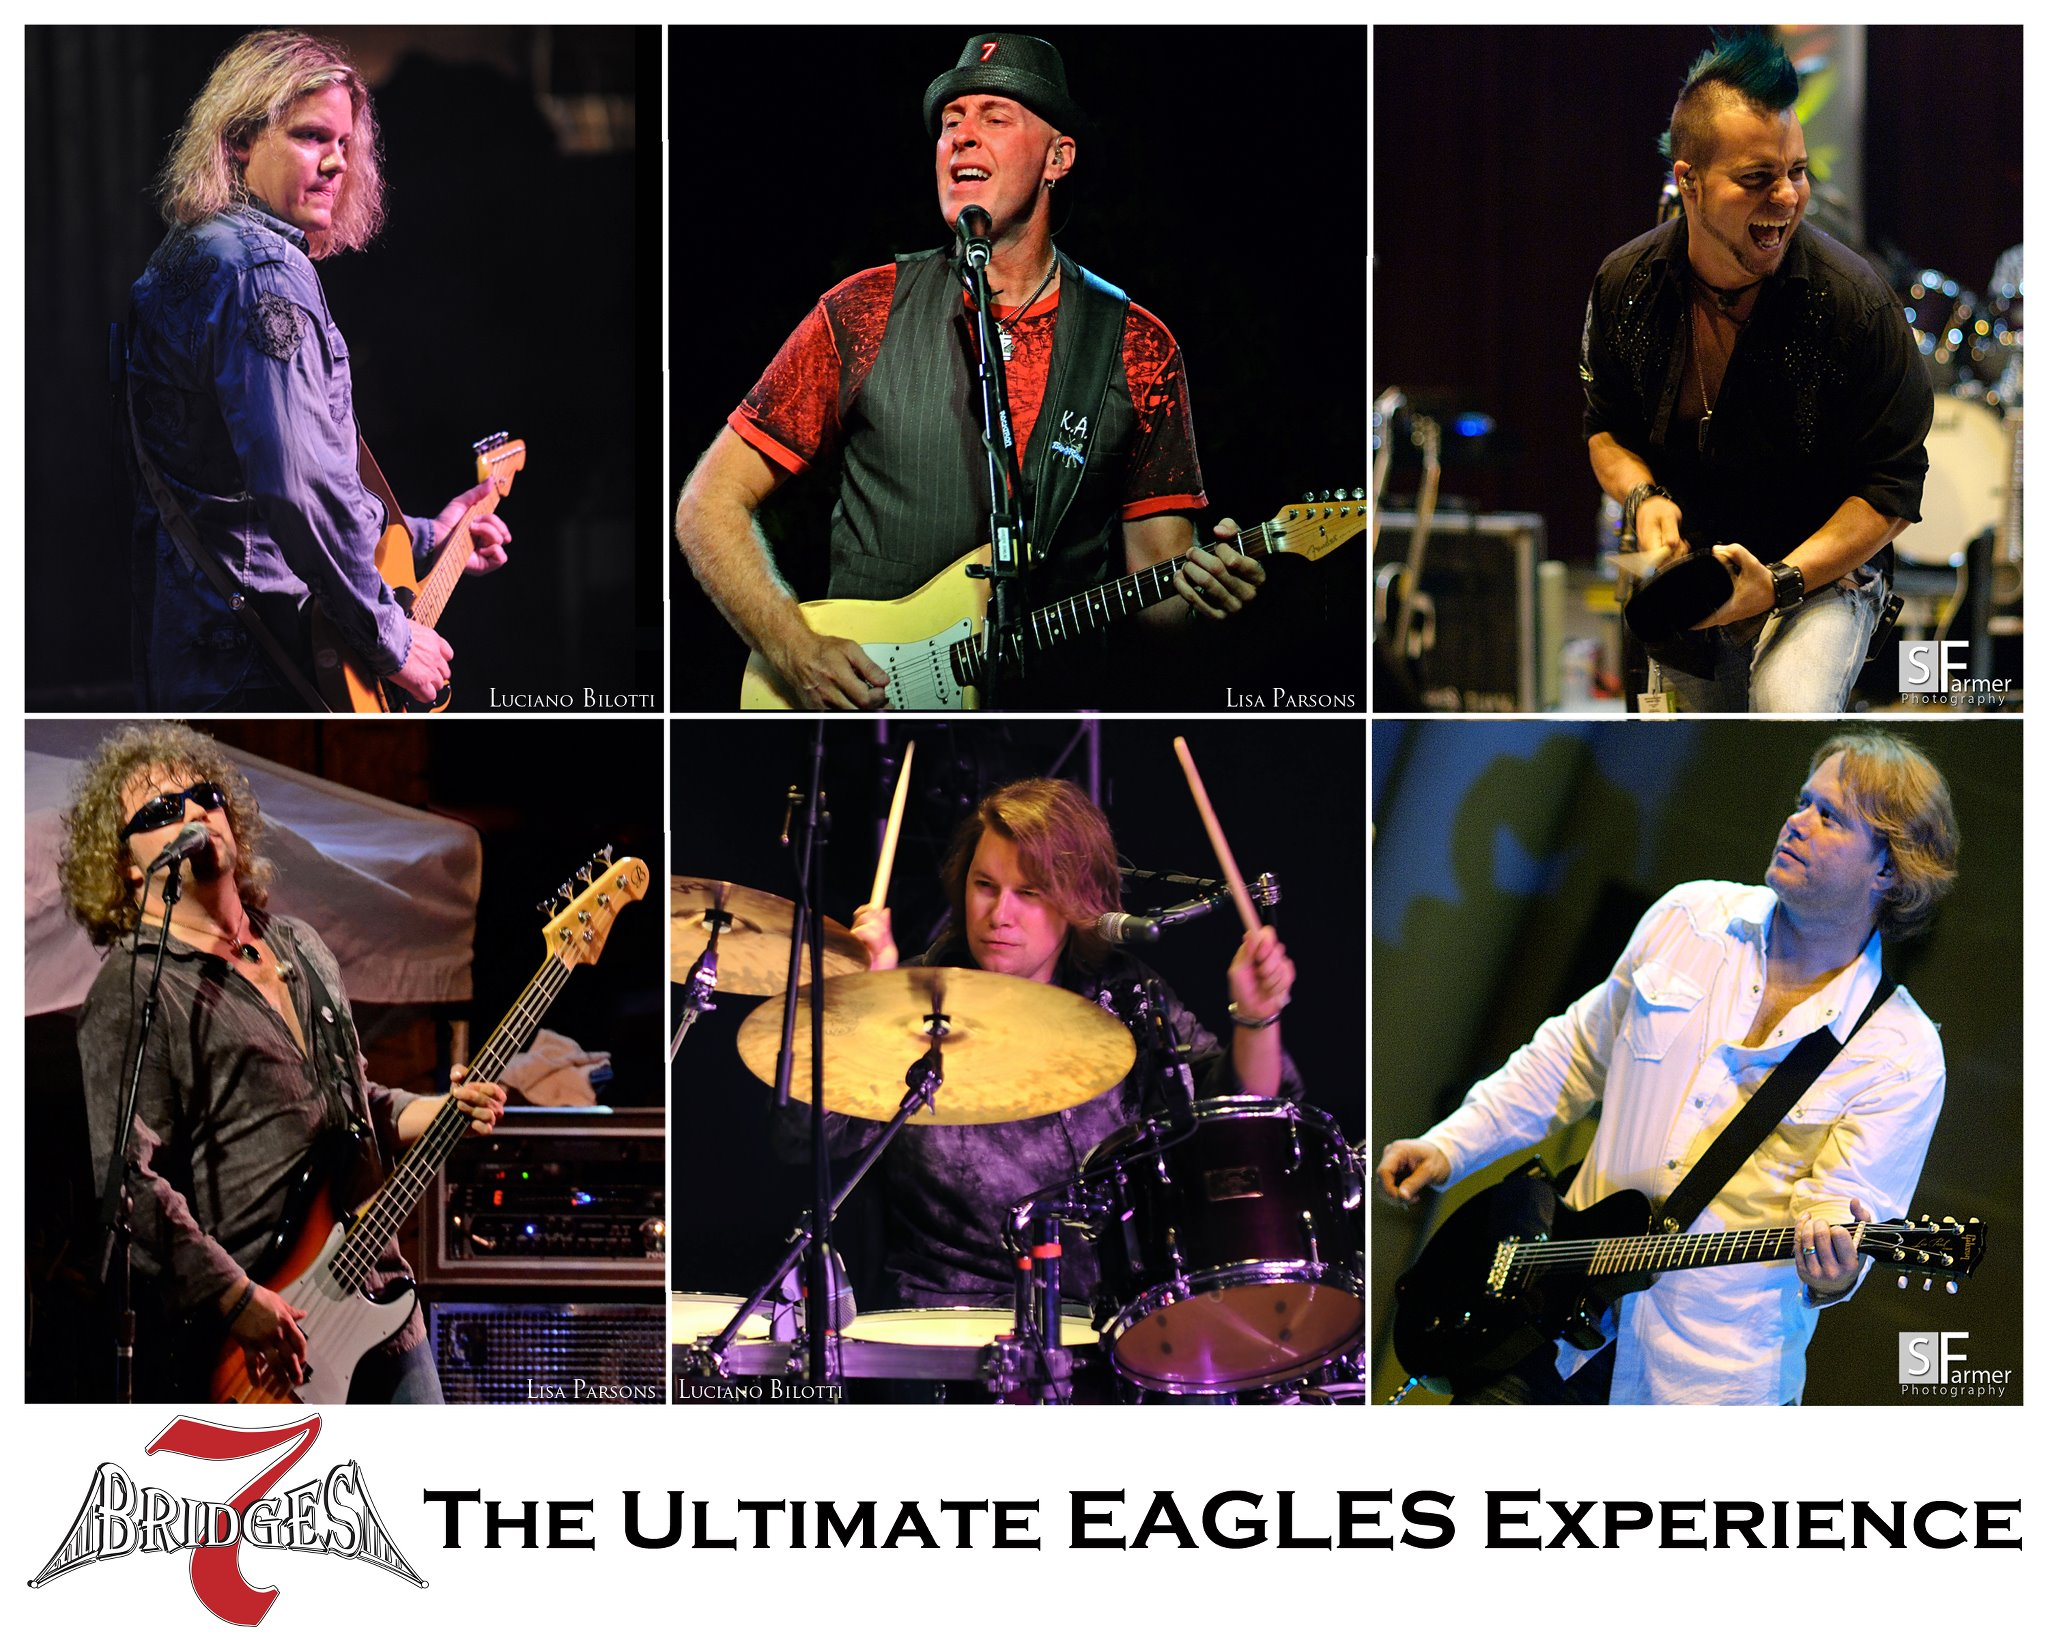 The Ultimate Eagles Experience At Circle Square Cultural Center Ocala Fl